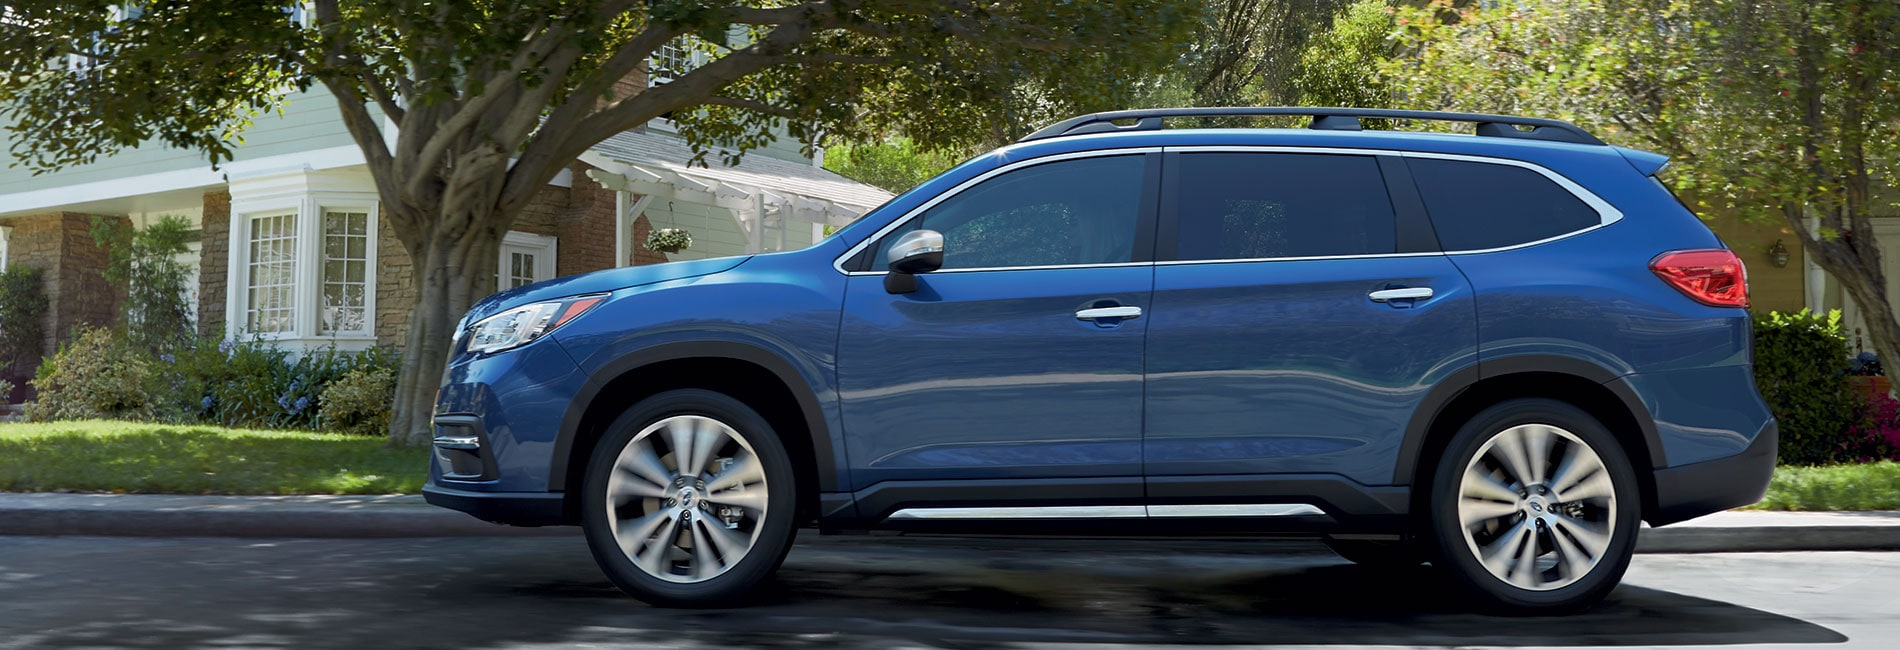 Subaru Ascent Exterior Vehicle Features